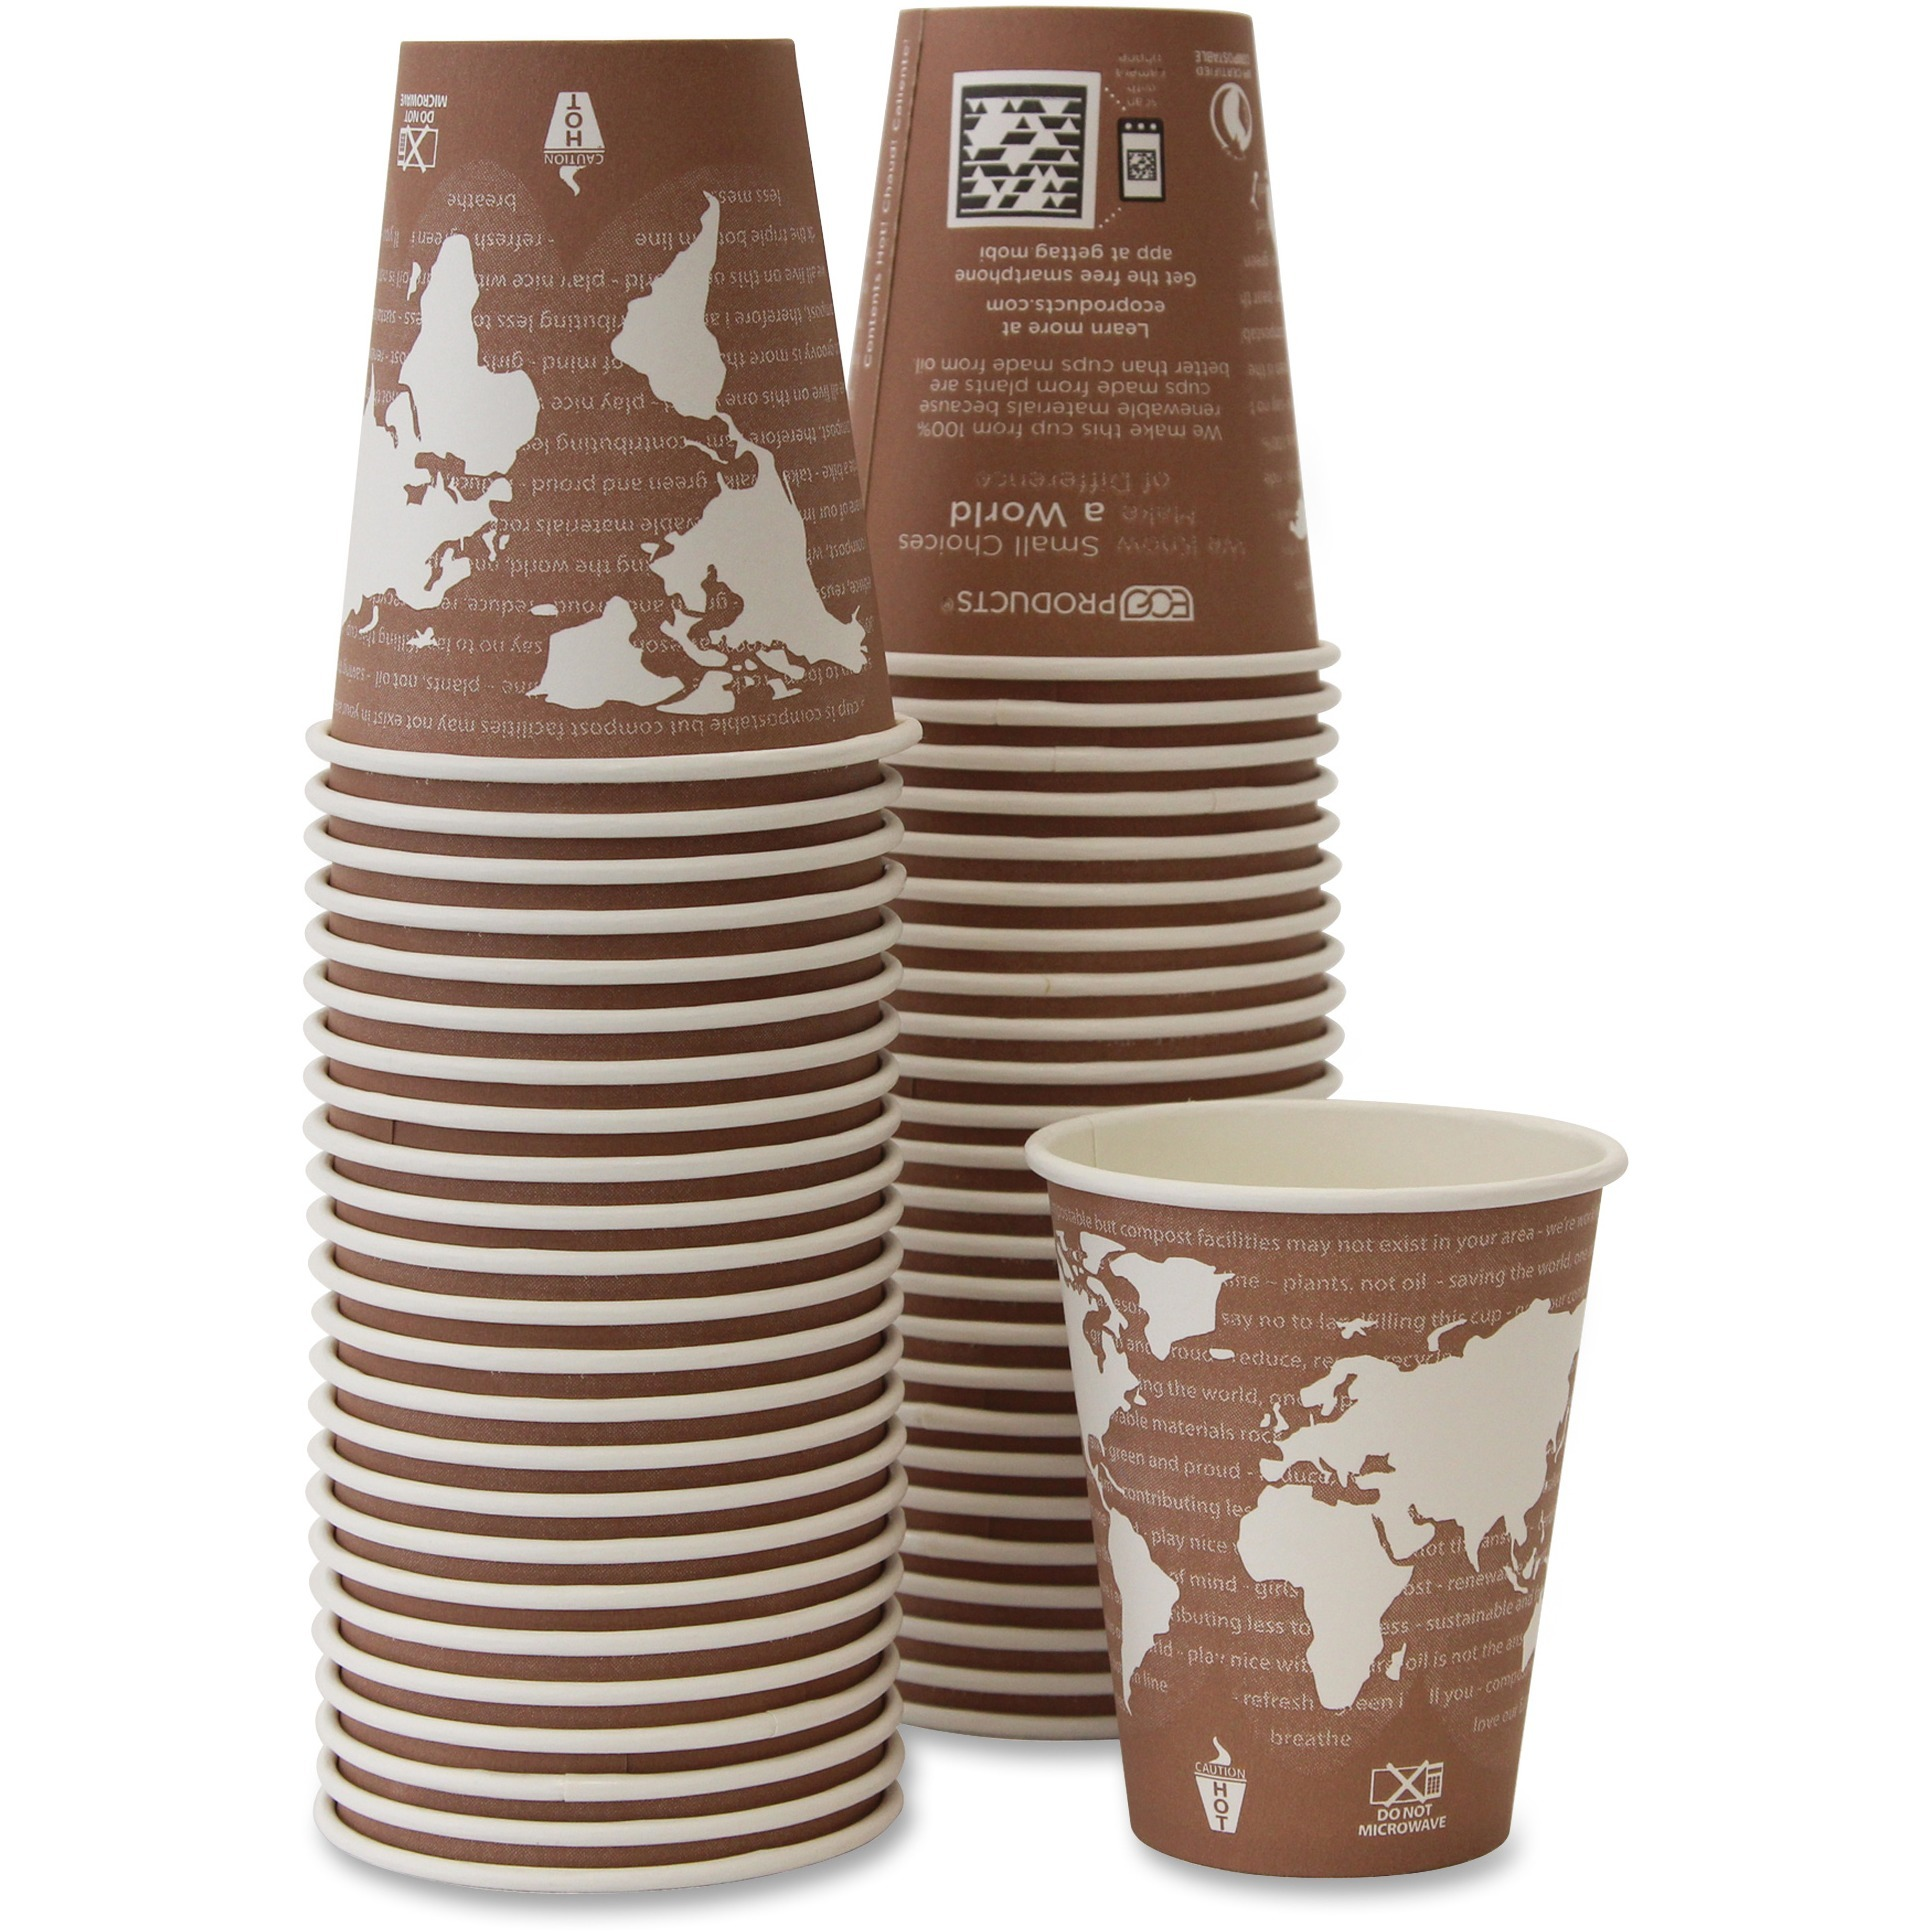 Eco-Products, ECOEPBHC8WAPK, Renewable Resource Hot Drink Cups, 50 / Pack, Multi